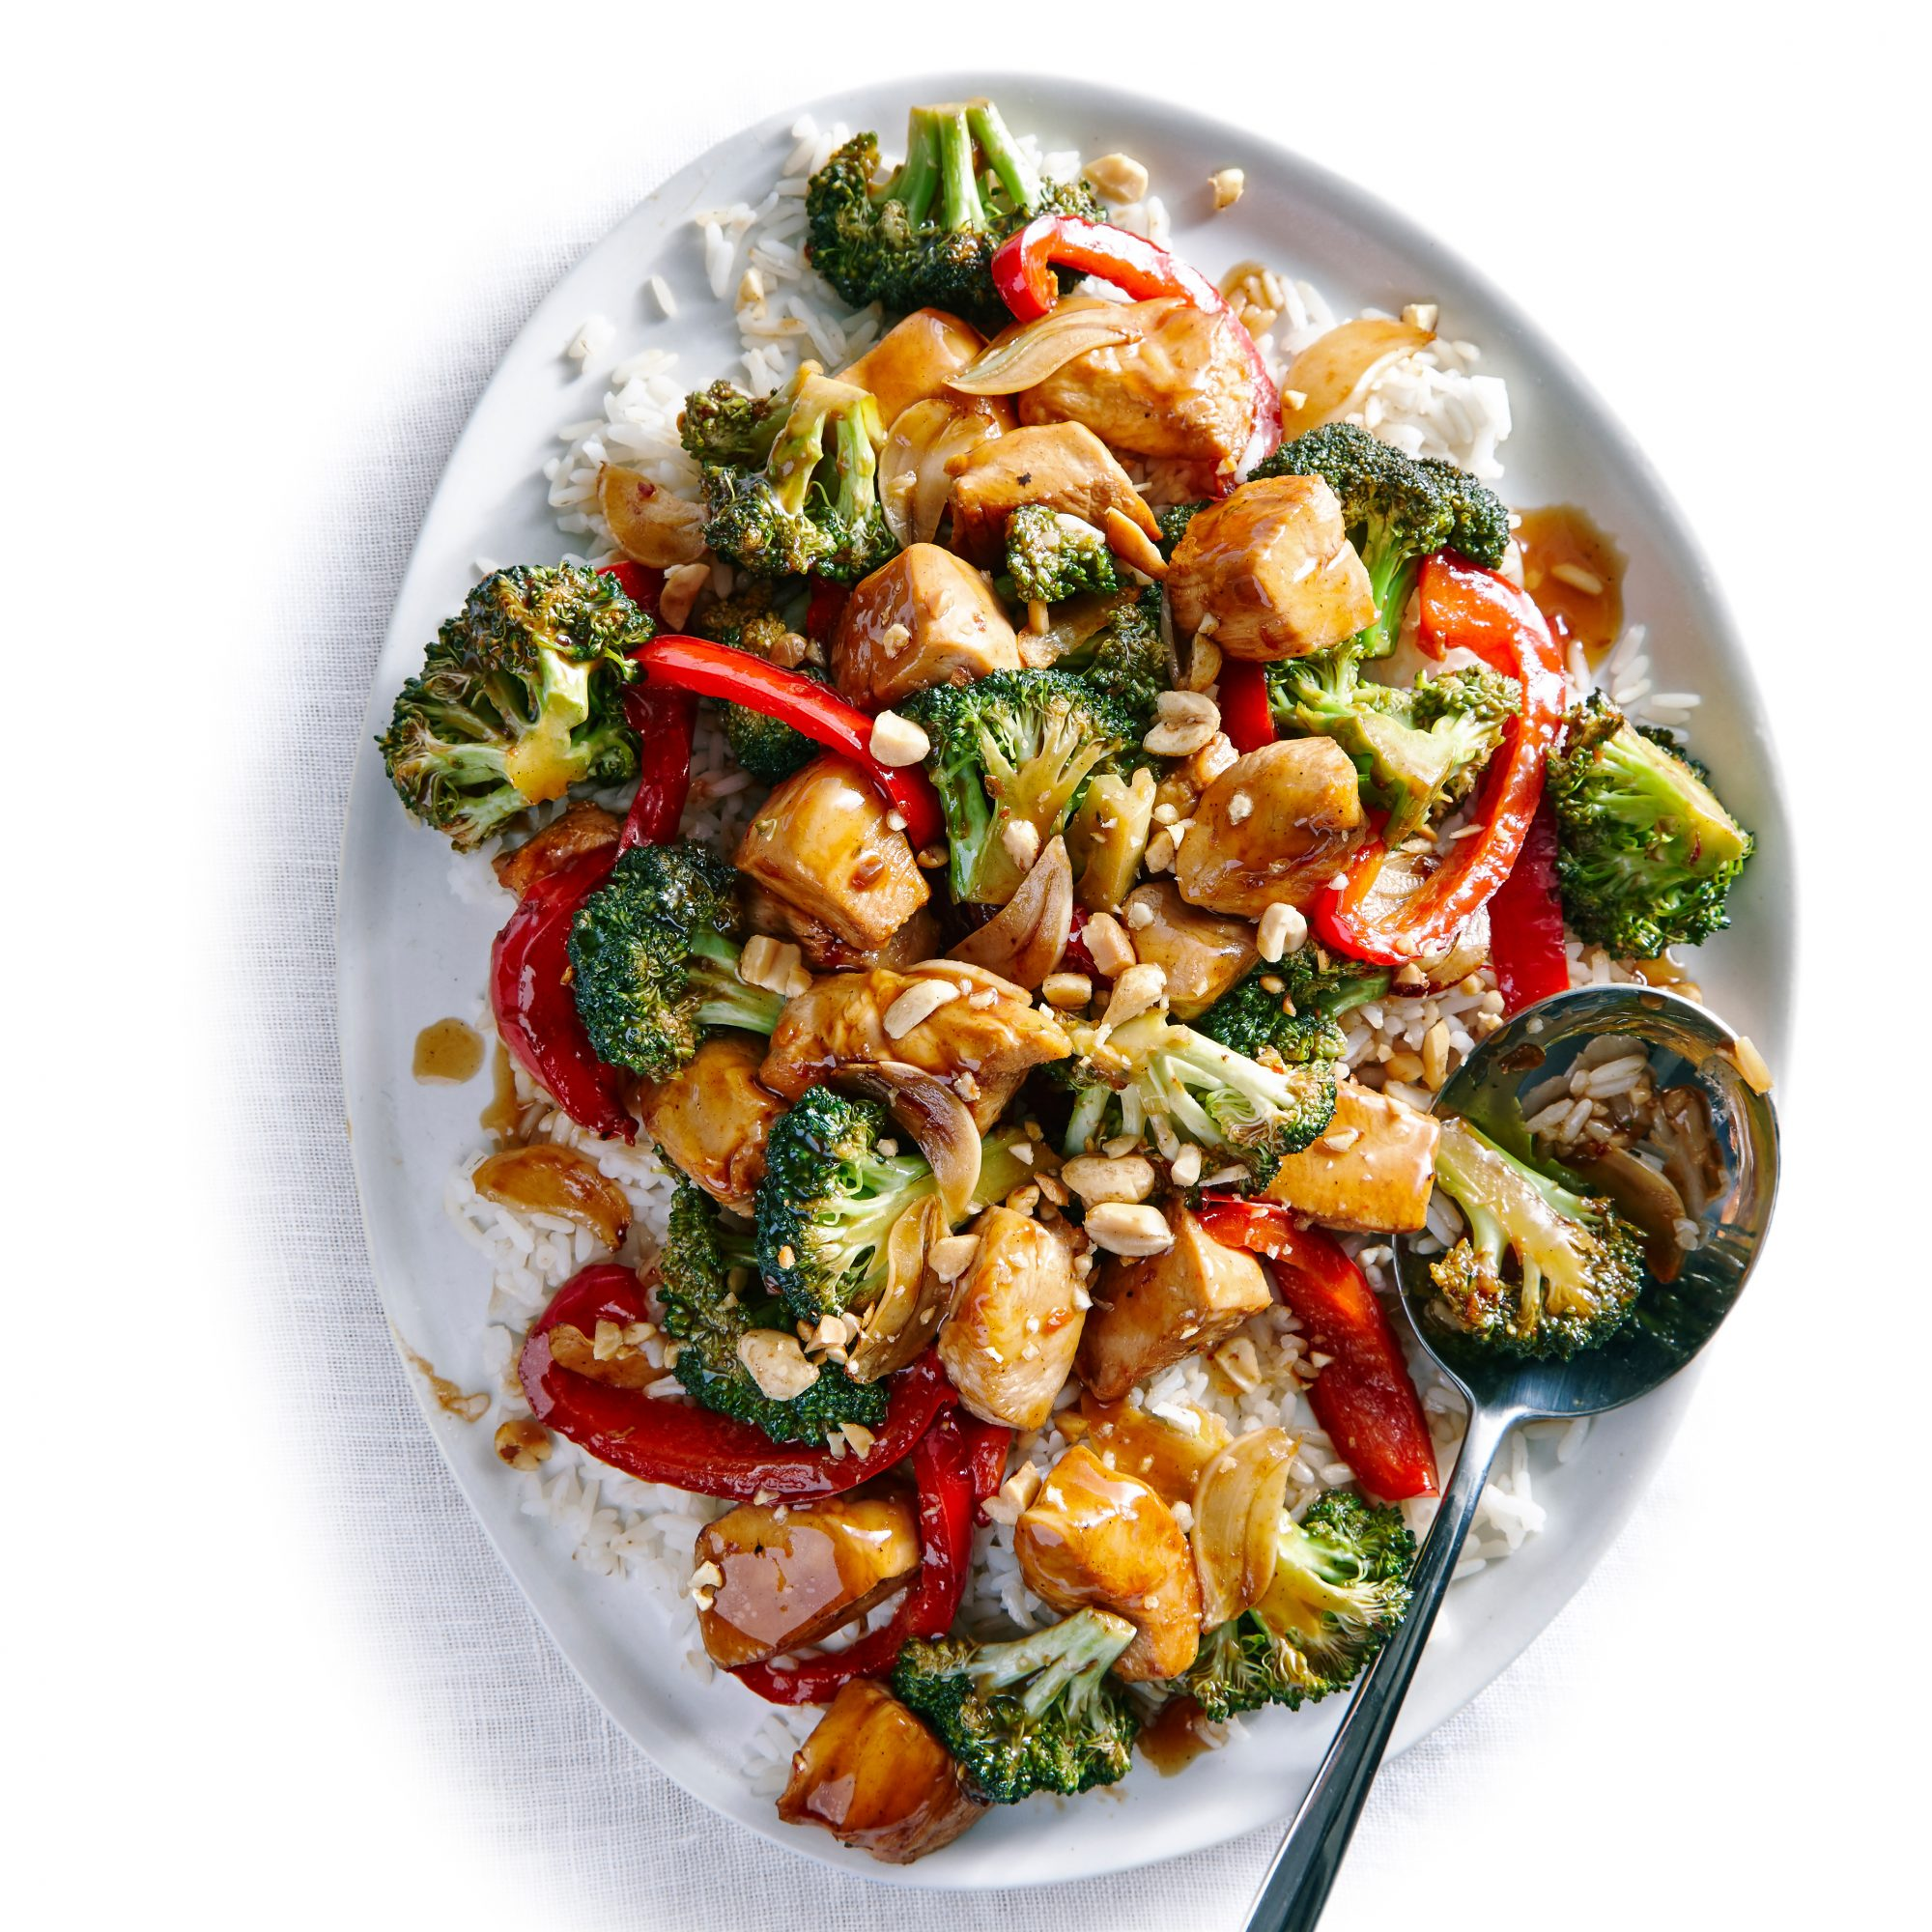 Chicken Broccoli Stir-Fry